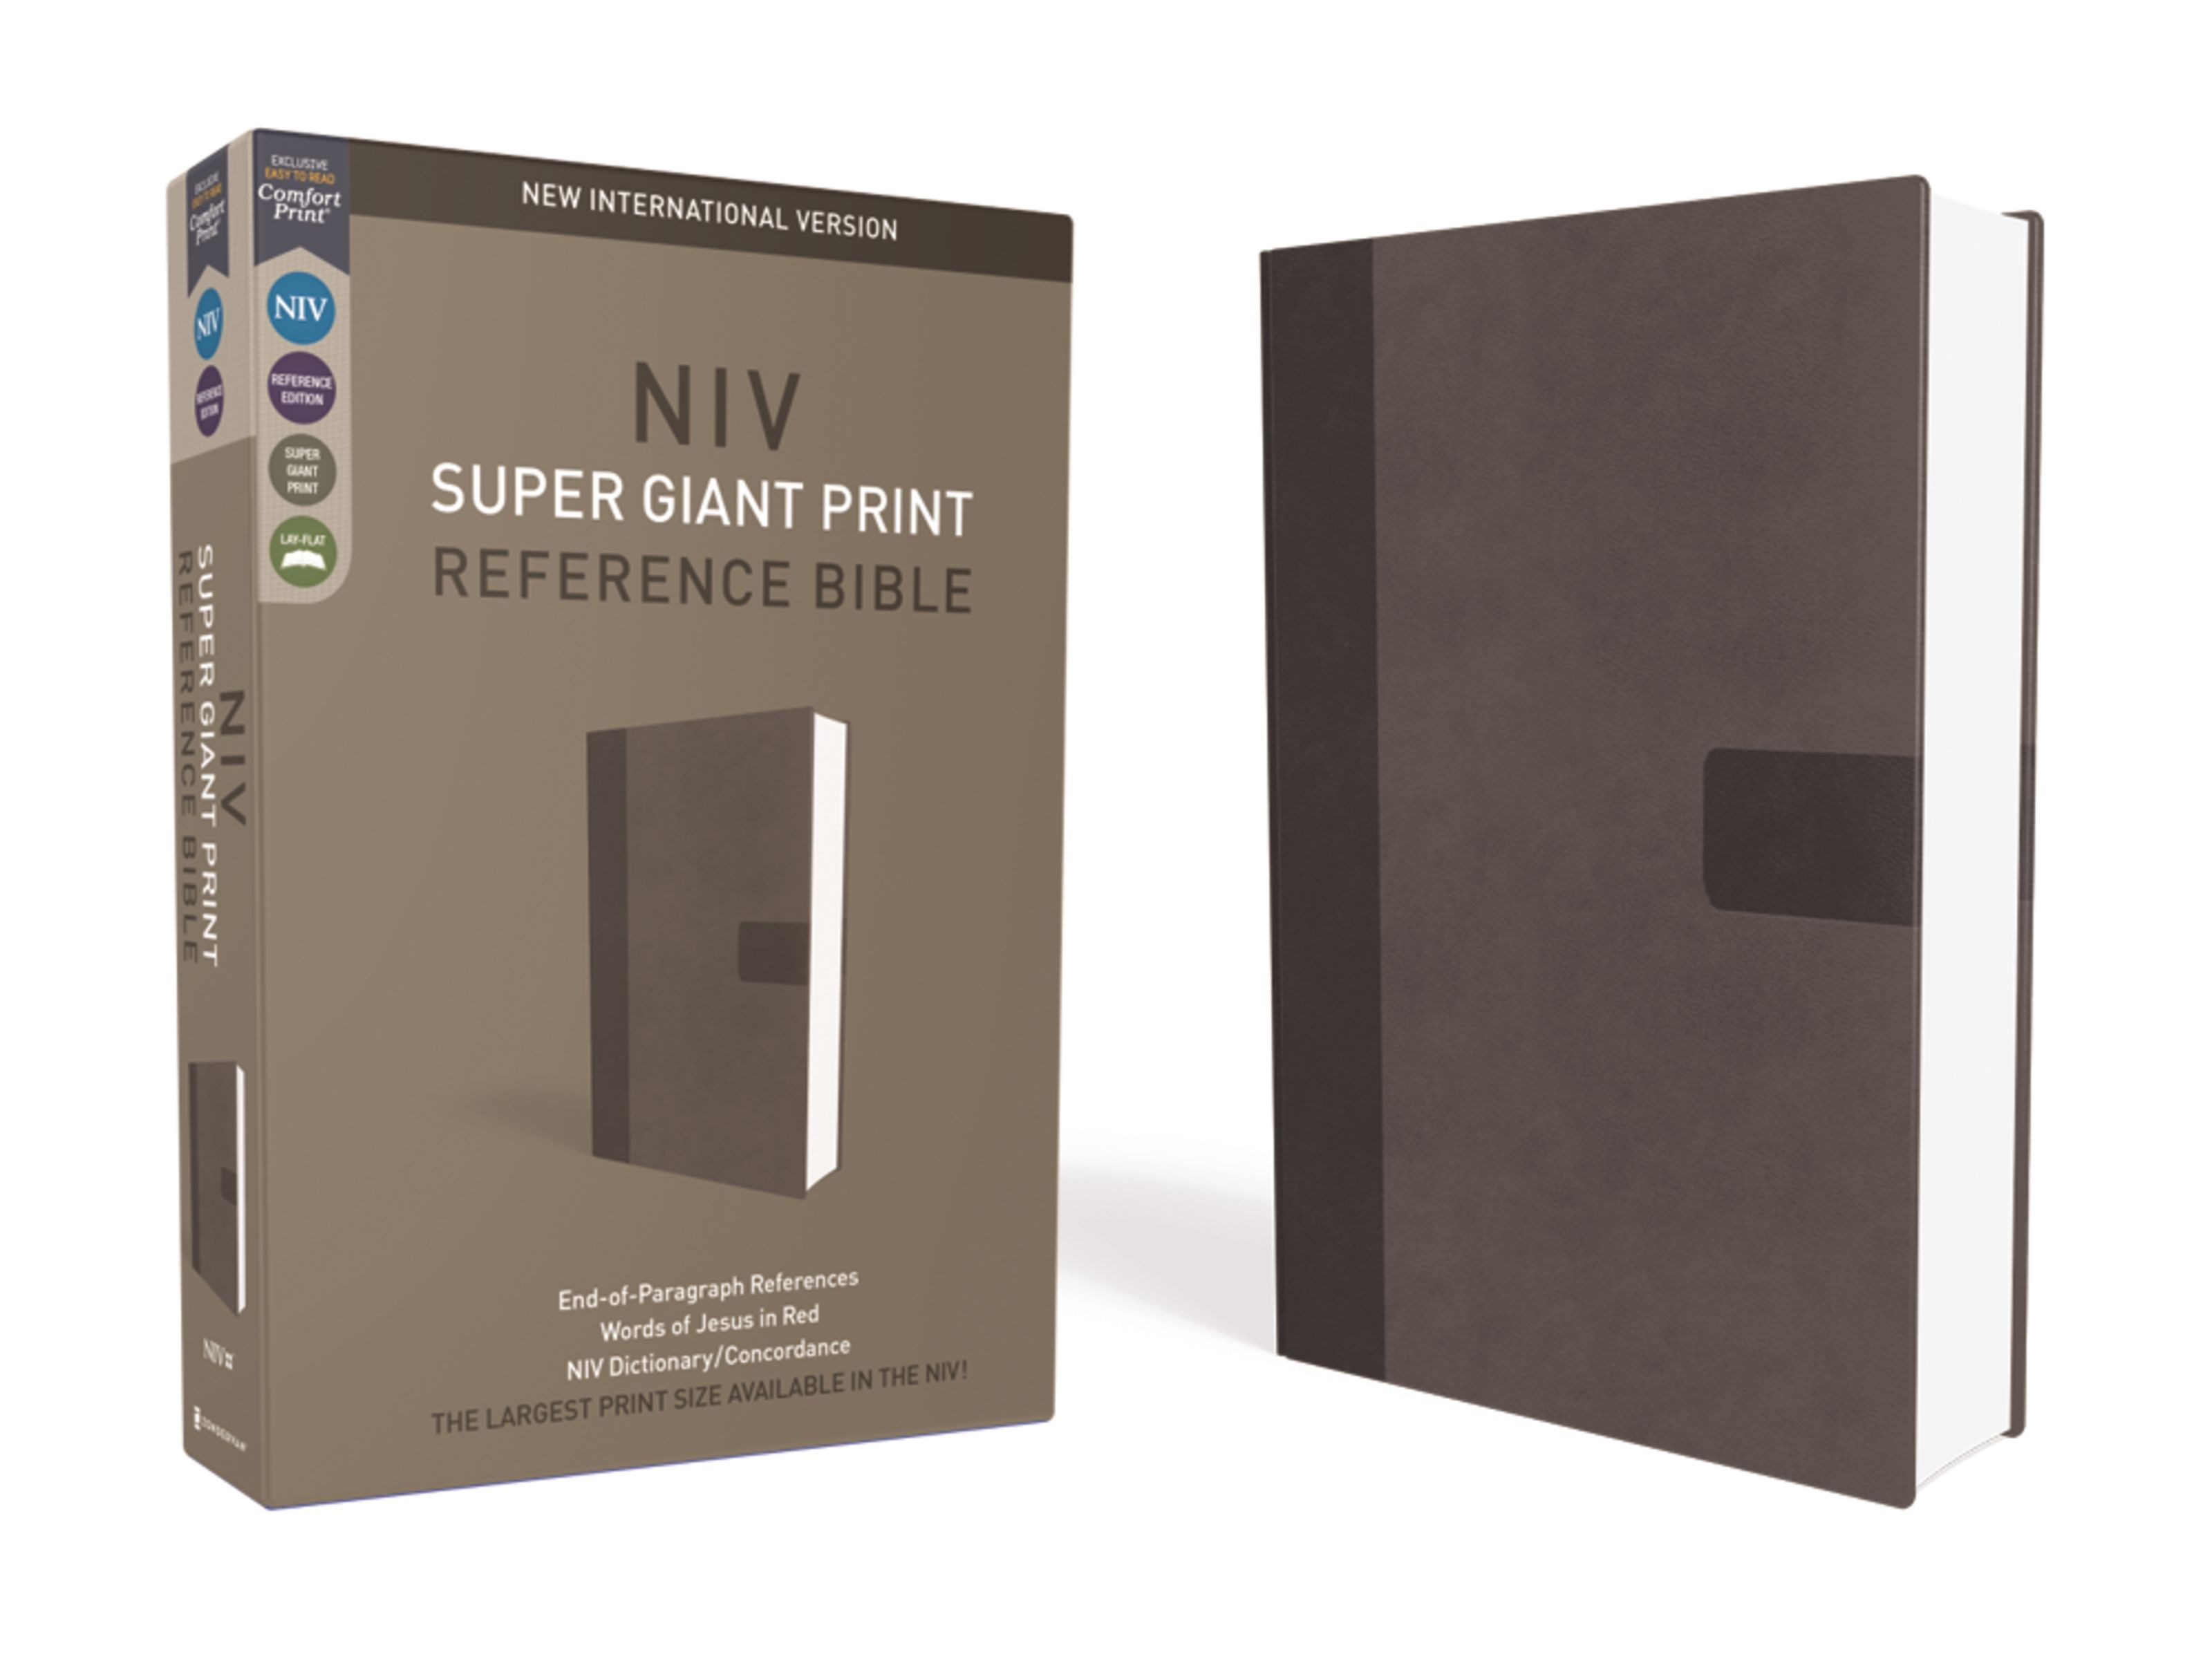 NIV Super Giant Print Reference Bible-Charcoal Leathersoft